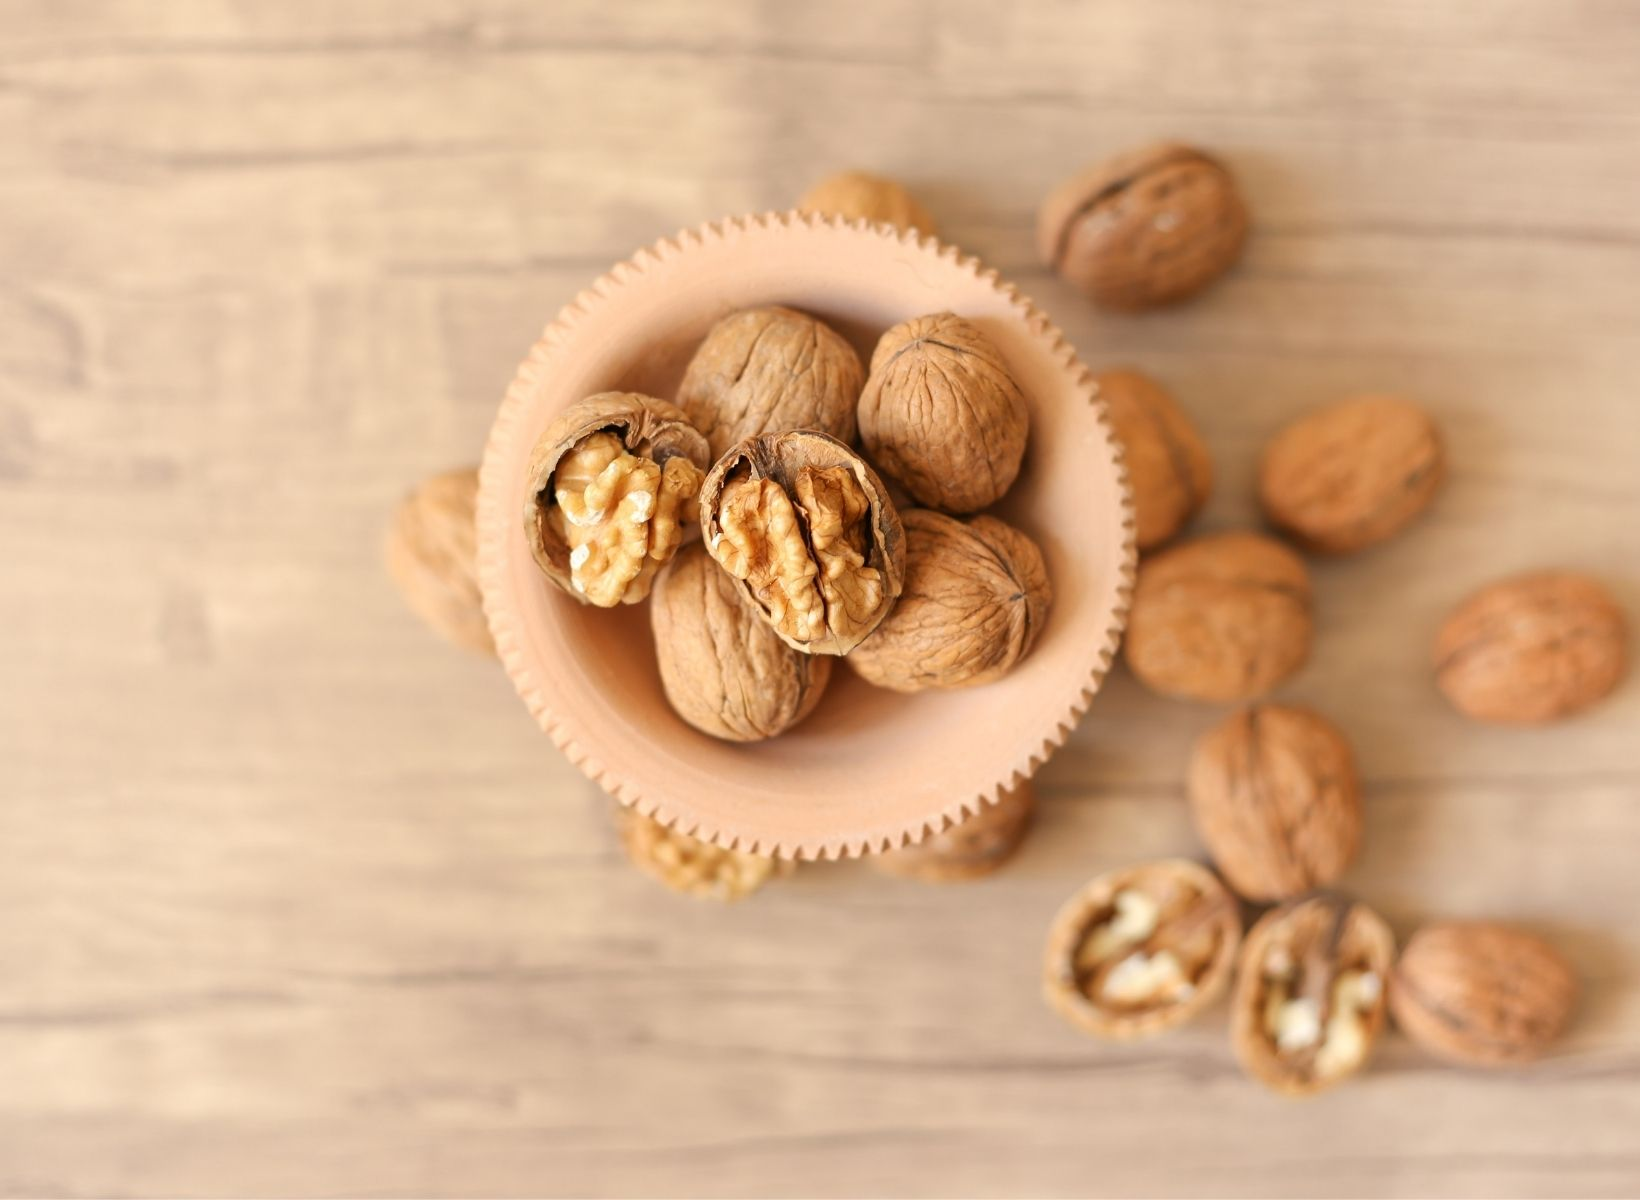 An overhead shot of a small brown bowl with walnuts, an example of a low-glycemic snack